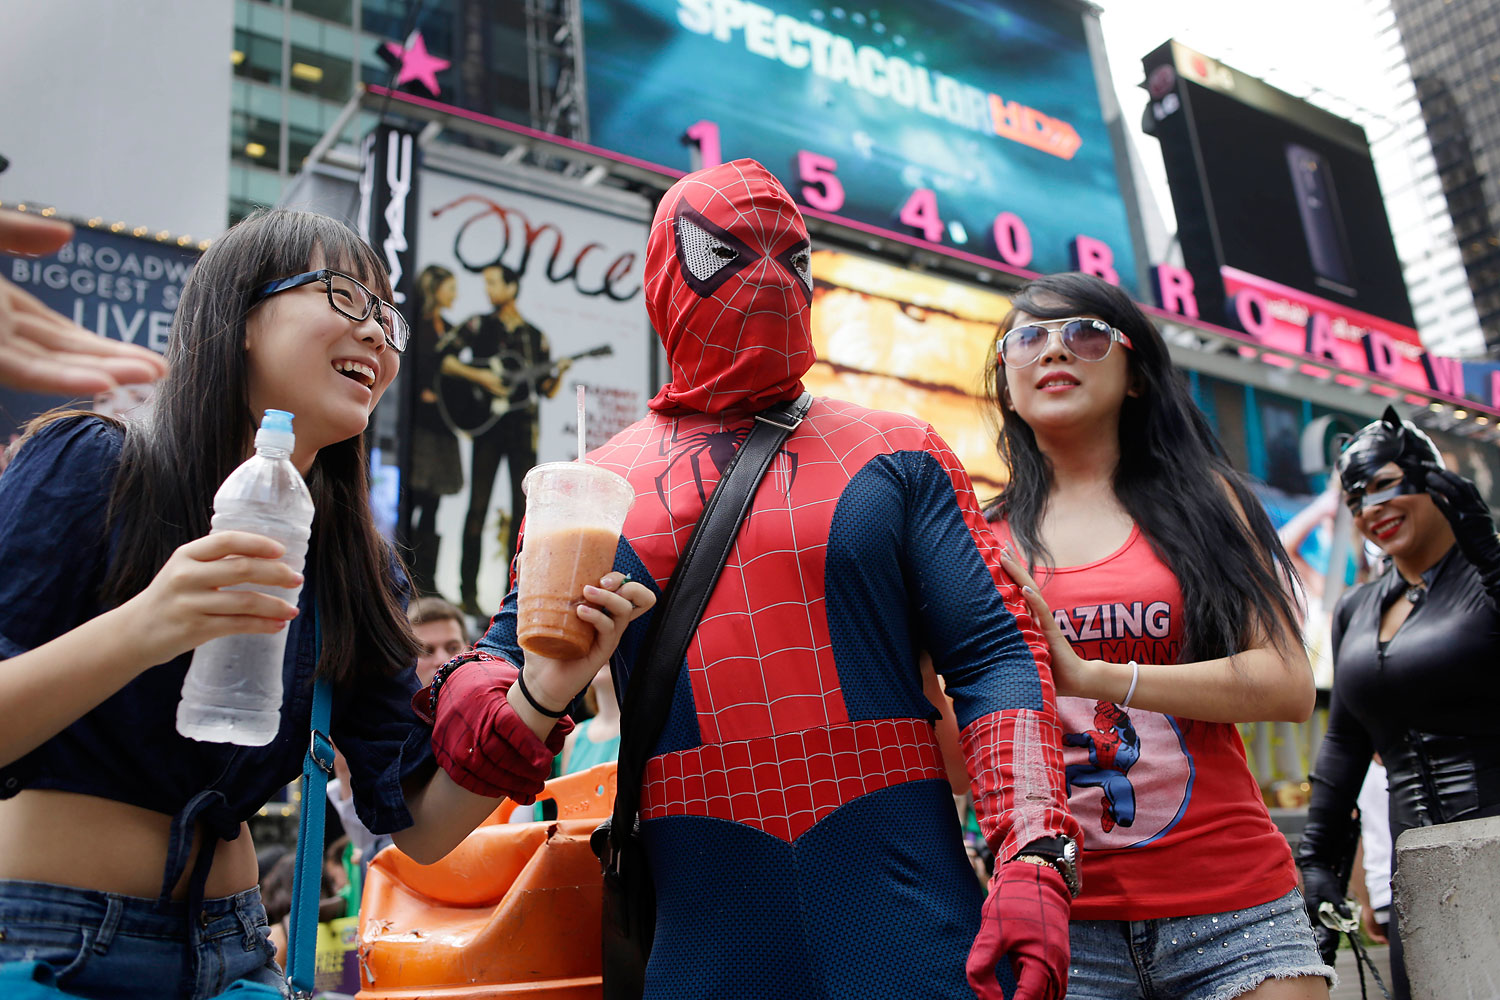 A performer dressed as Spiderman poses with tourists in Times Square, July 28, 2014 in New York. Two costumed performers, dressed as Spiderman and Batman, were charged with misdemeanor assault after an incident with a heckler in Times Square, New York, Sept. 14, 2014.